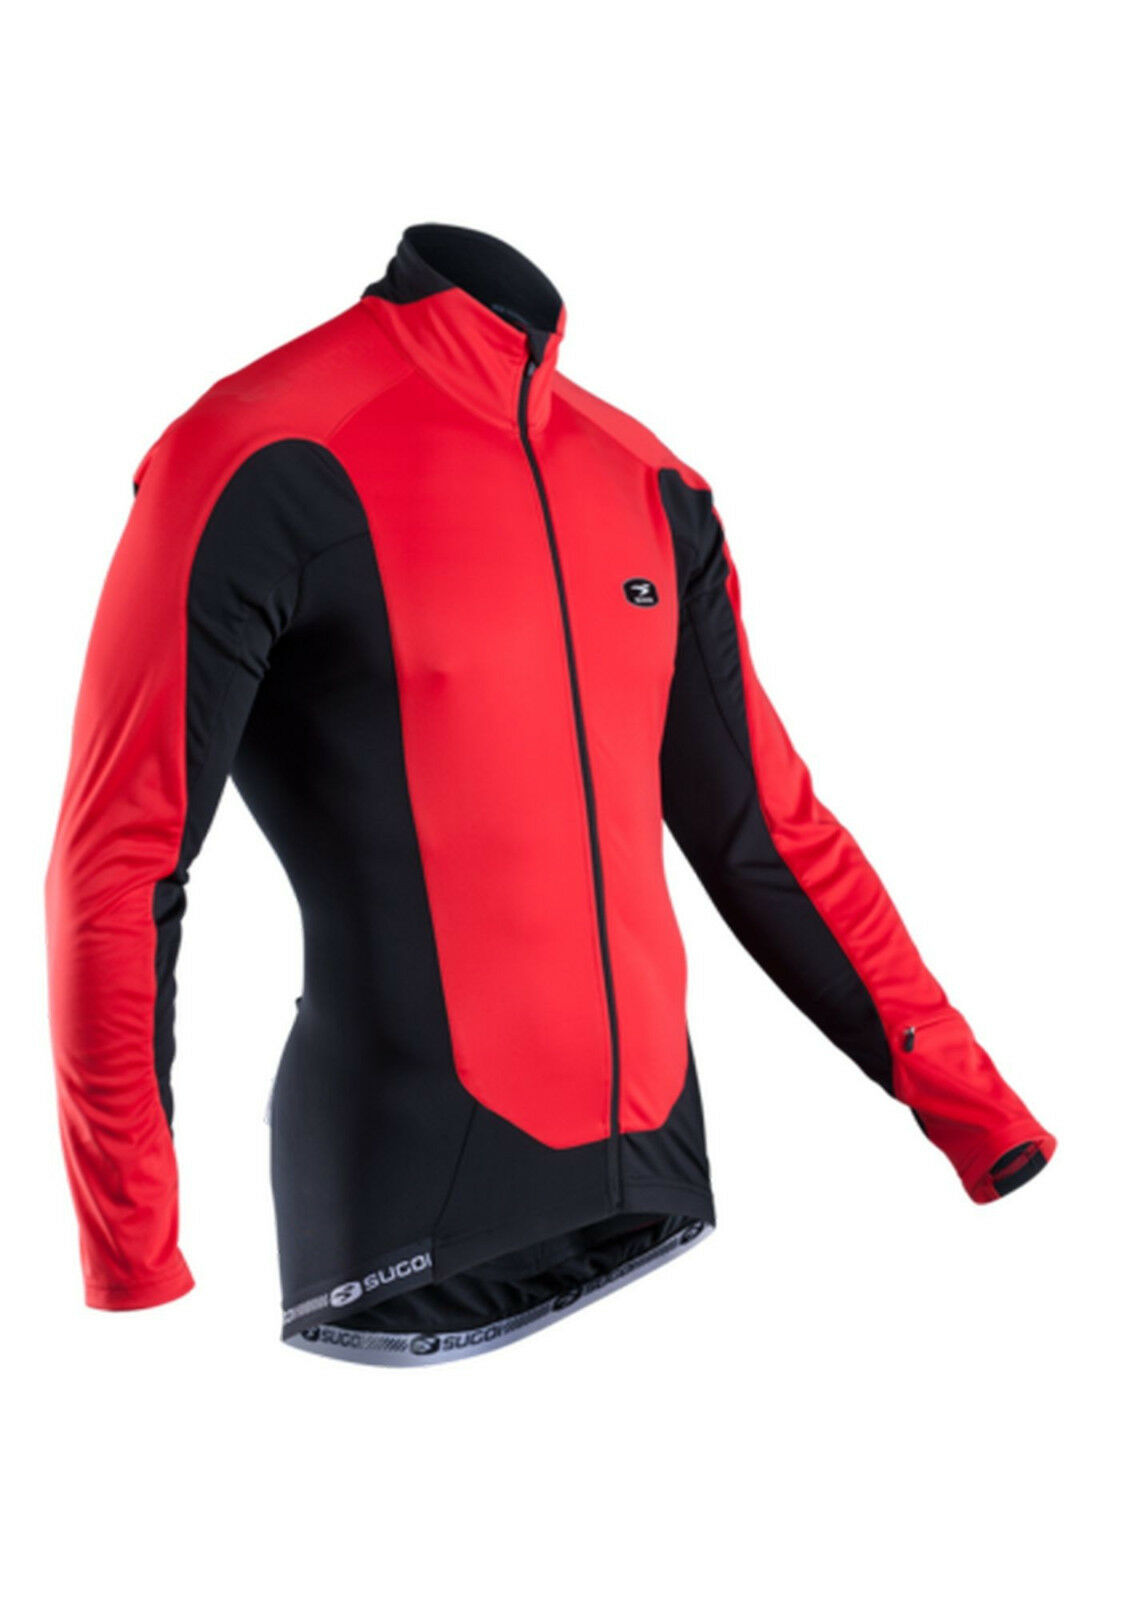 Sugoi RS Zero Thermal Long Sleeve Jersey Red Size Large New